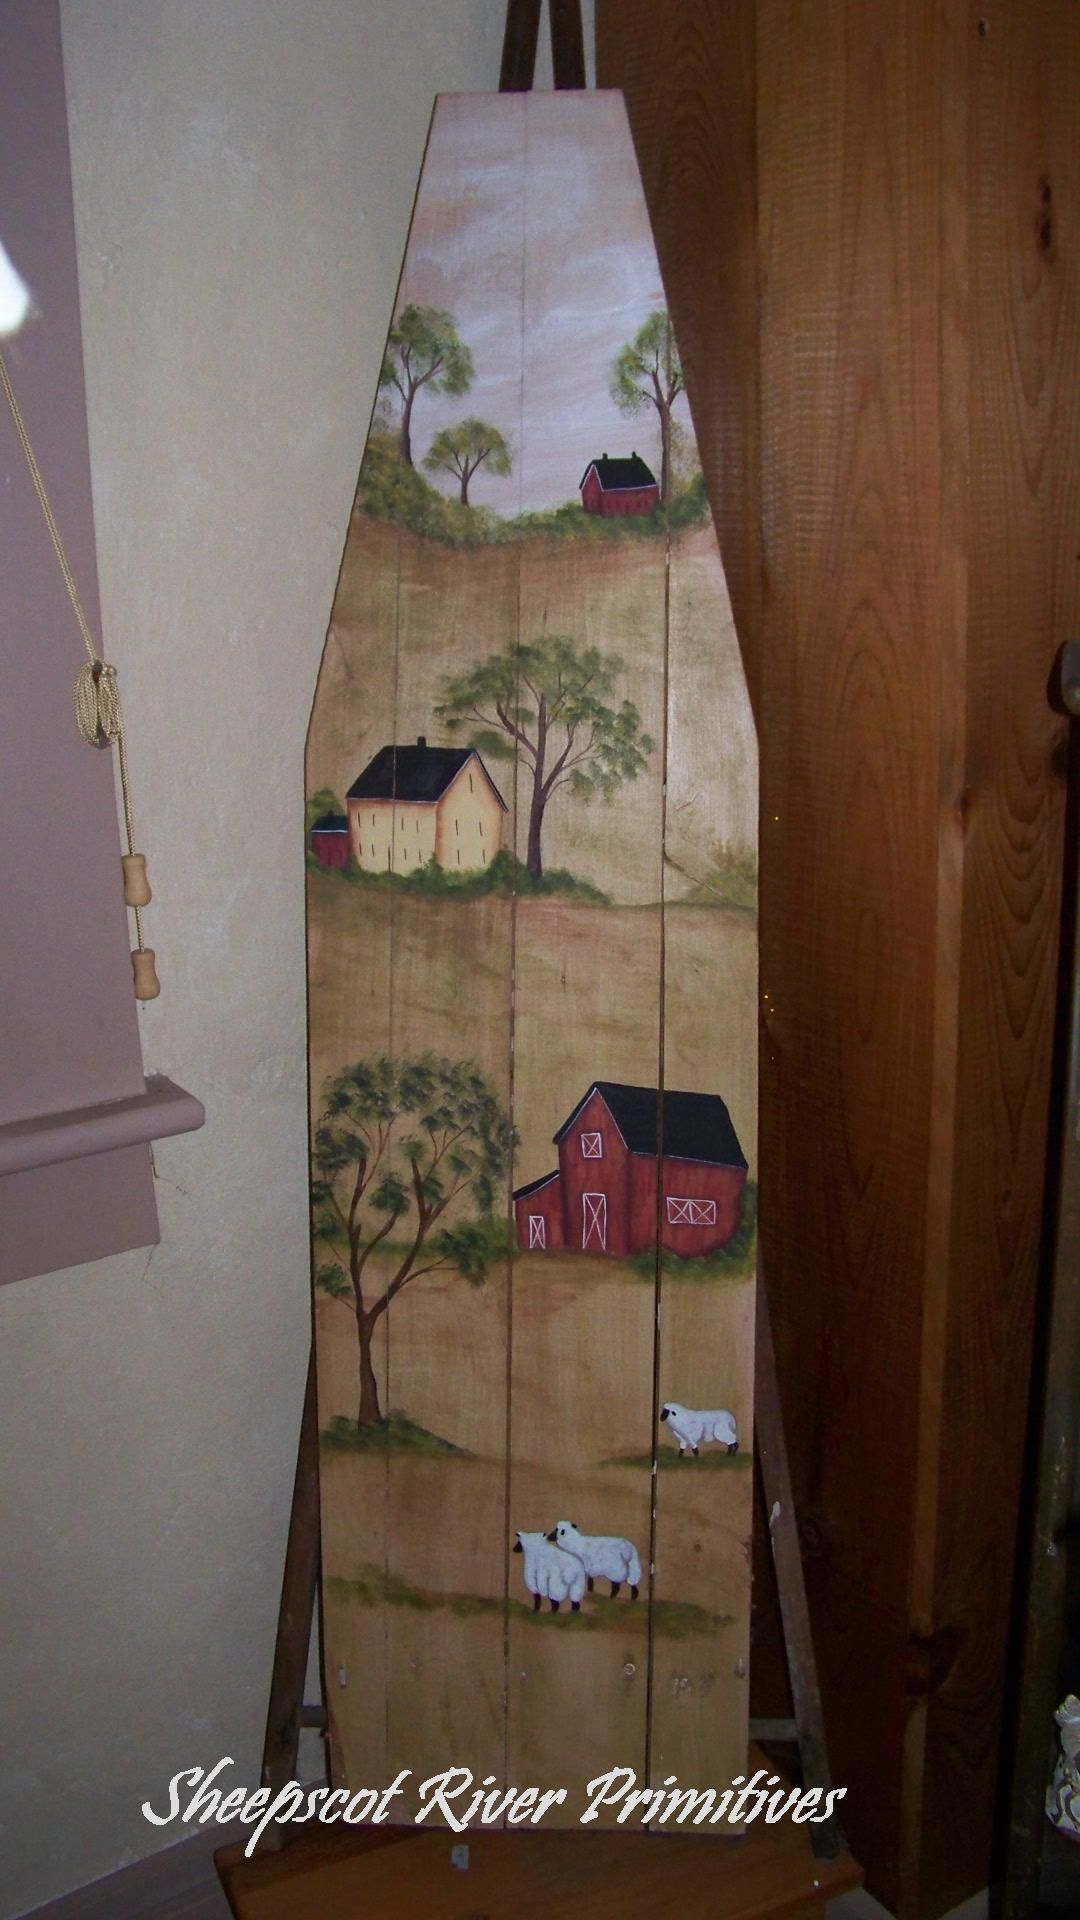 primitive decor american saltbox house 2 framed print 11 x 13 i repurposed this old ironing board and painted a new england country scene with sheep and saltbox houses